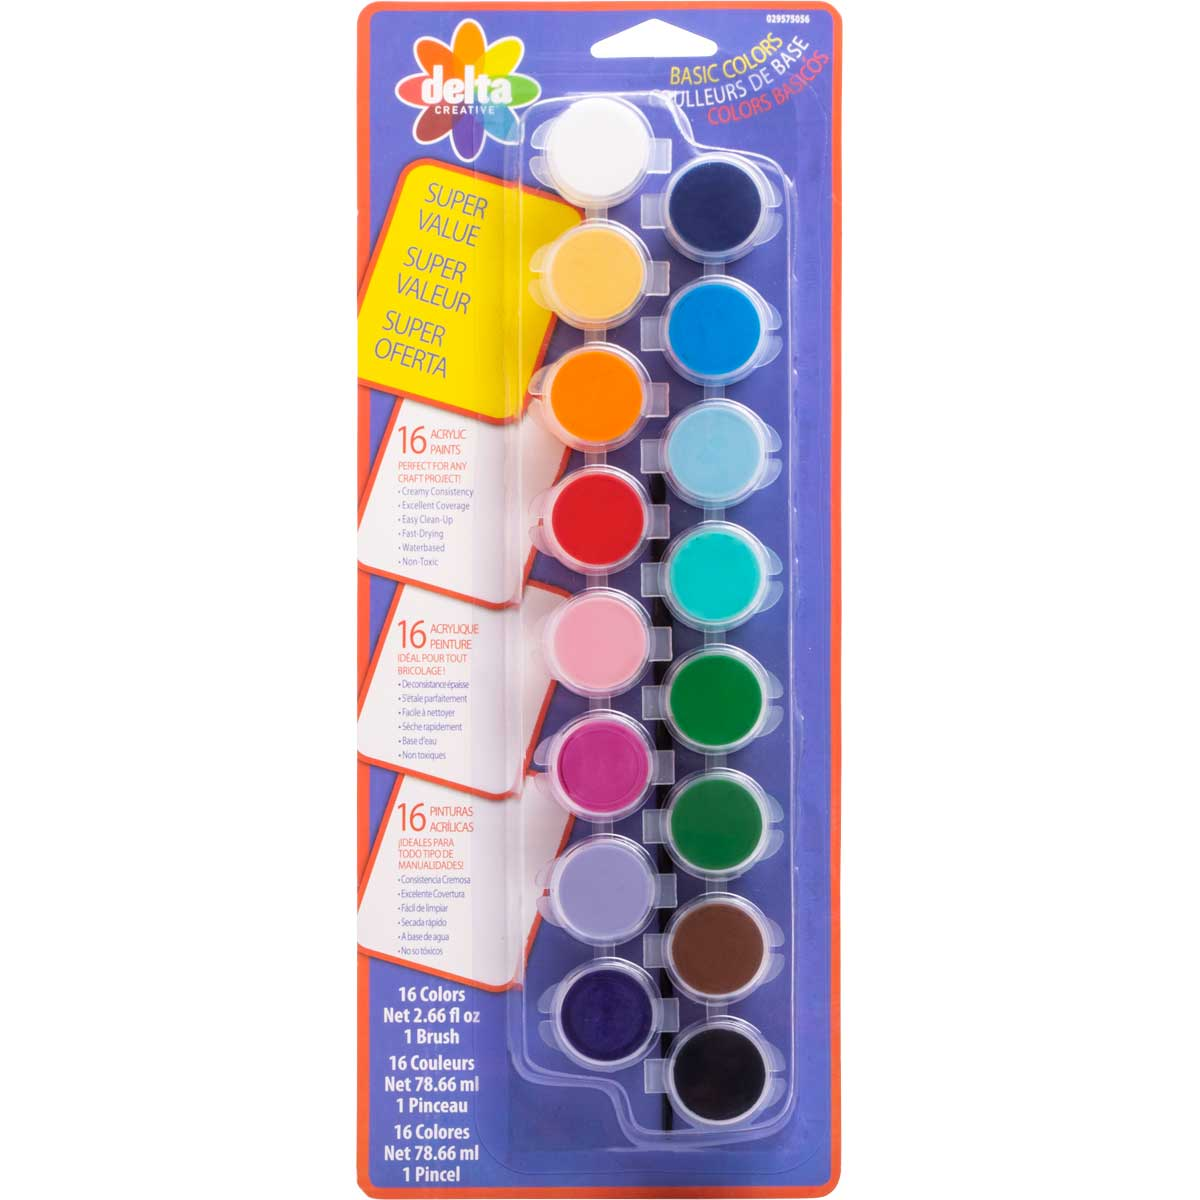 Delta Ceramcoat ® Paint Super Value Set - Basic, 16 Colors